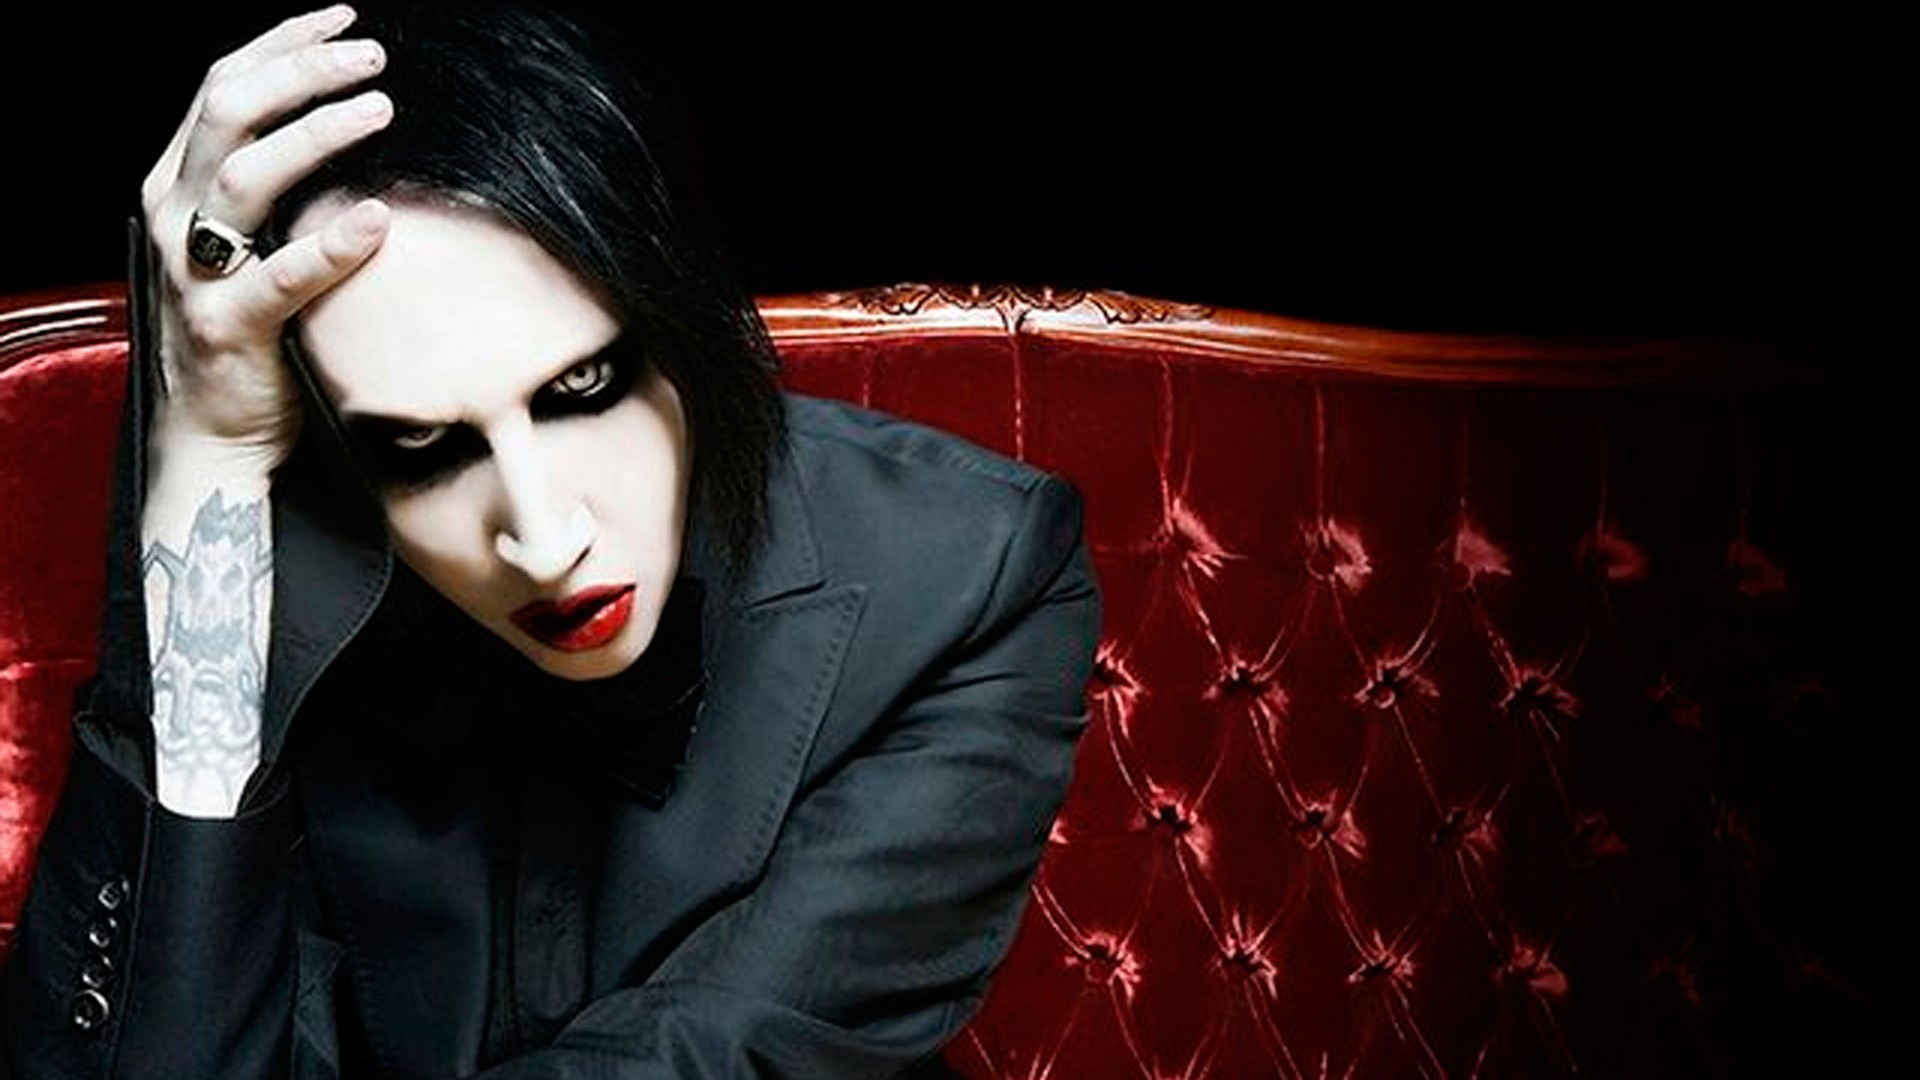 Marilyn Manson Wallpaper Hd 65 Images